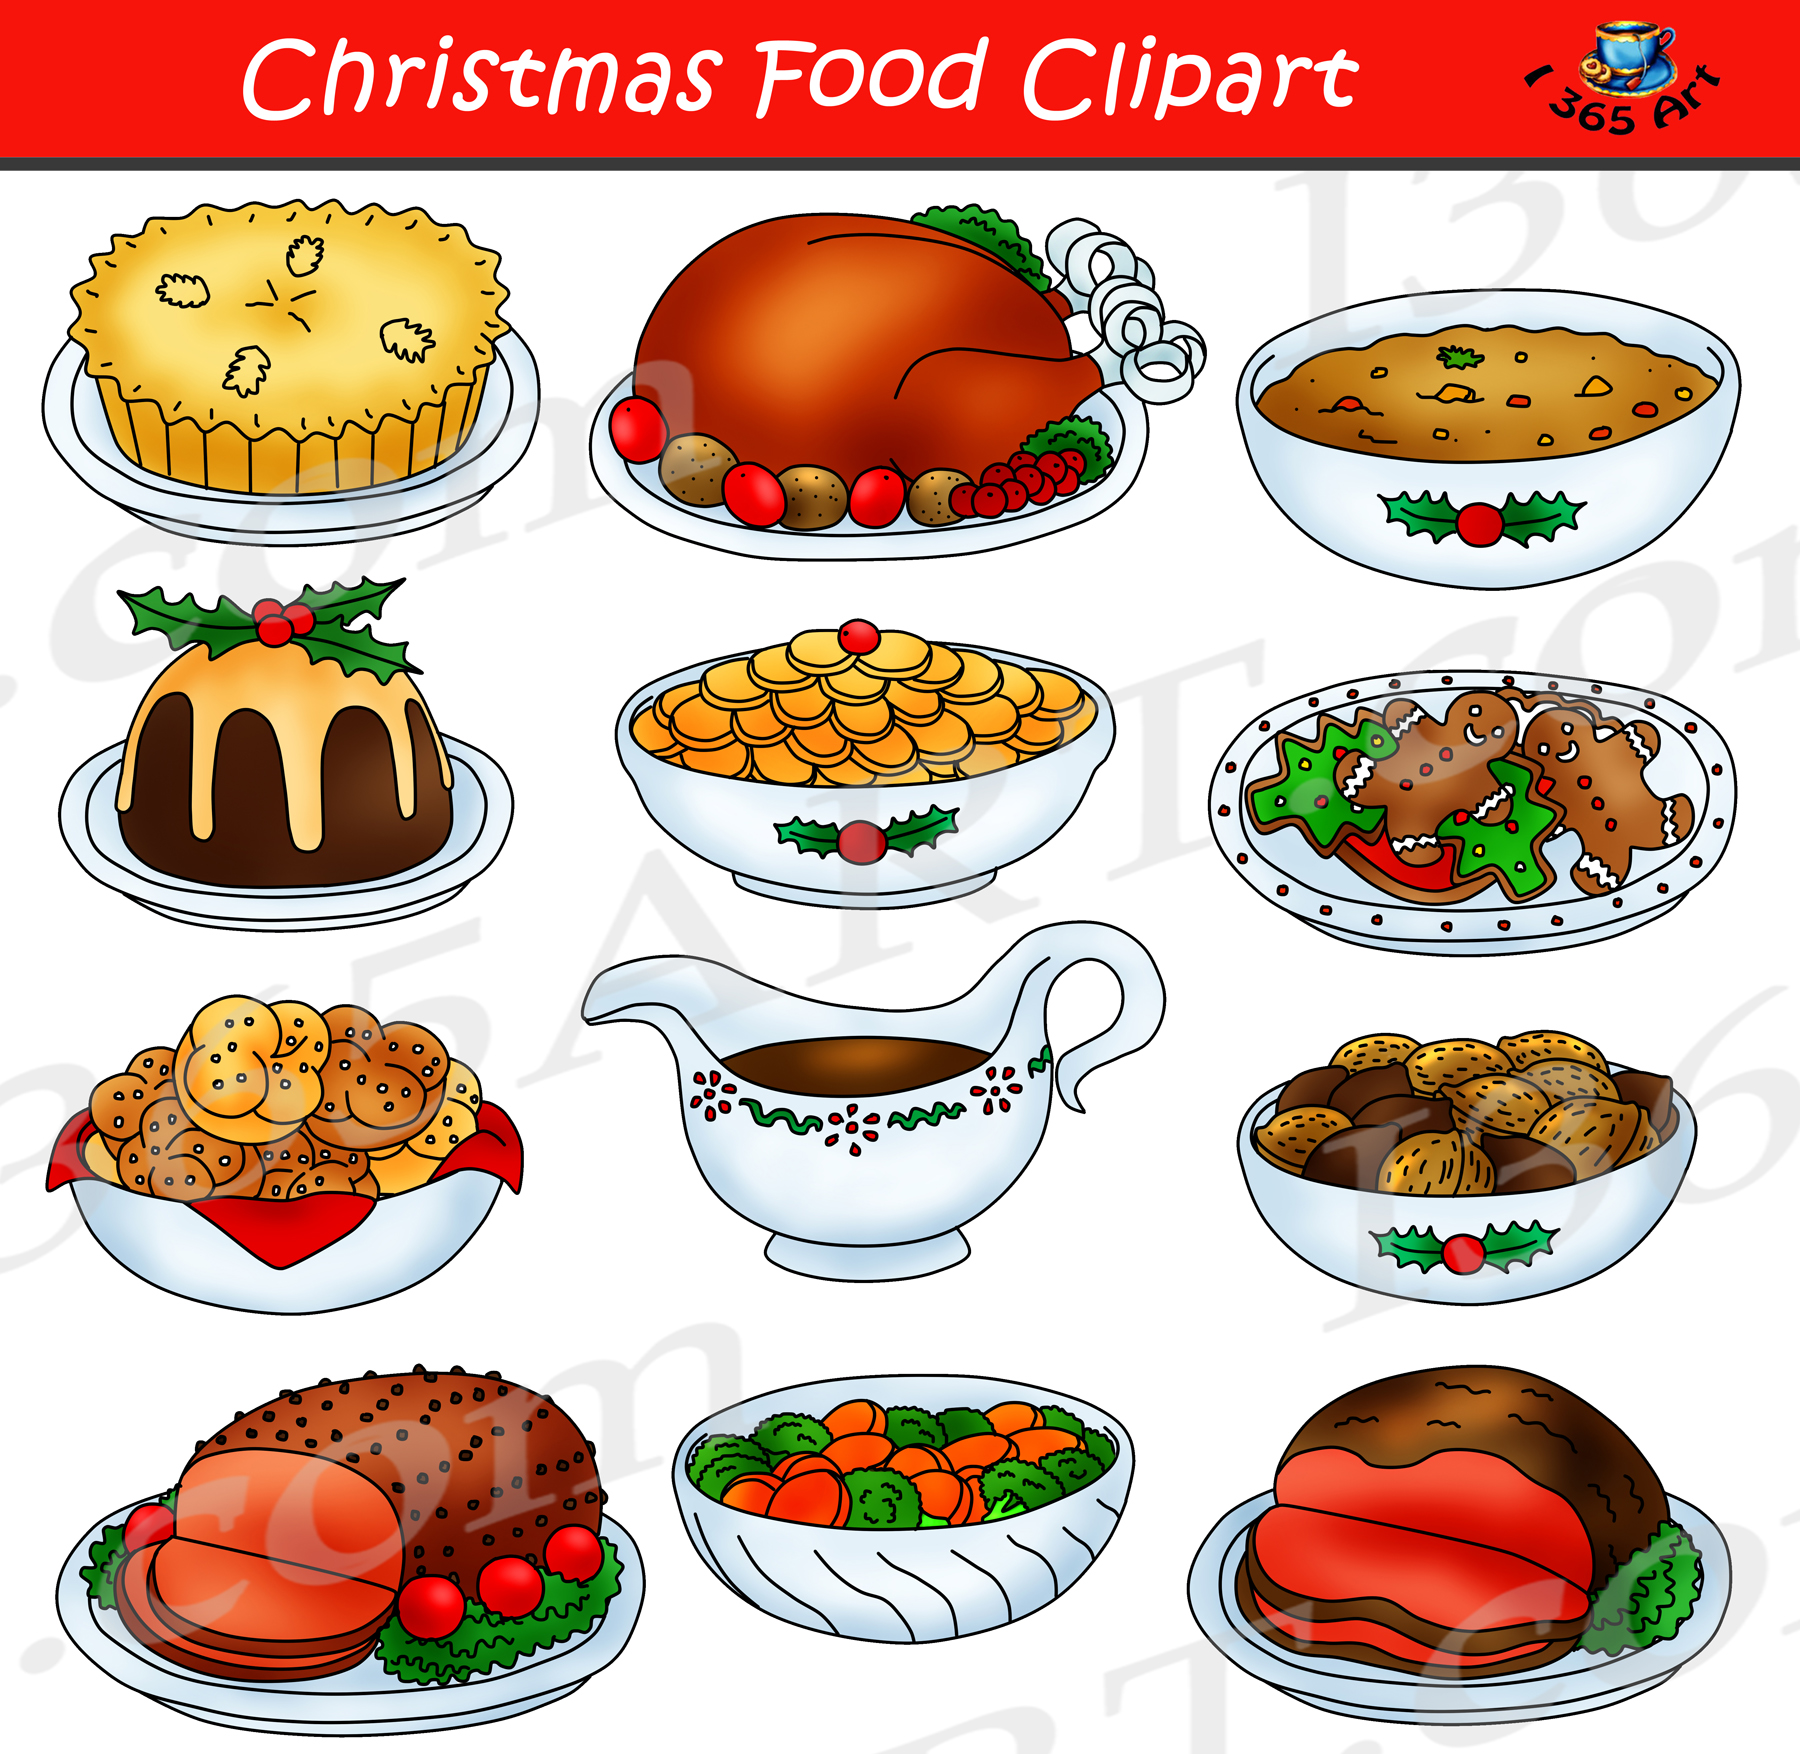 Reigning clipart jpg free download Christmas Food Clipart Graphic Set jpg free download